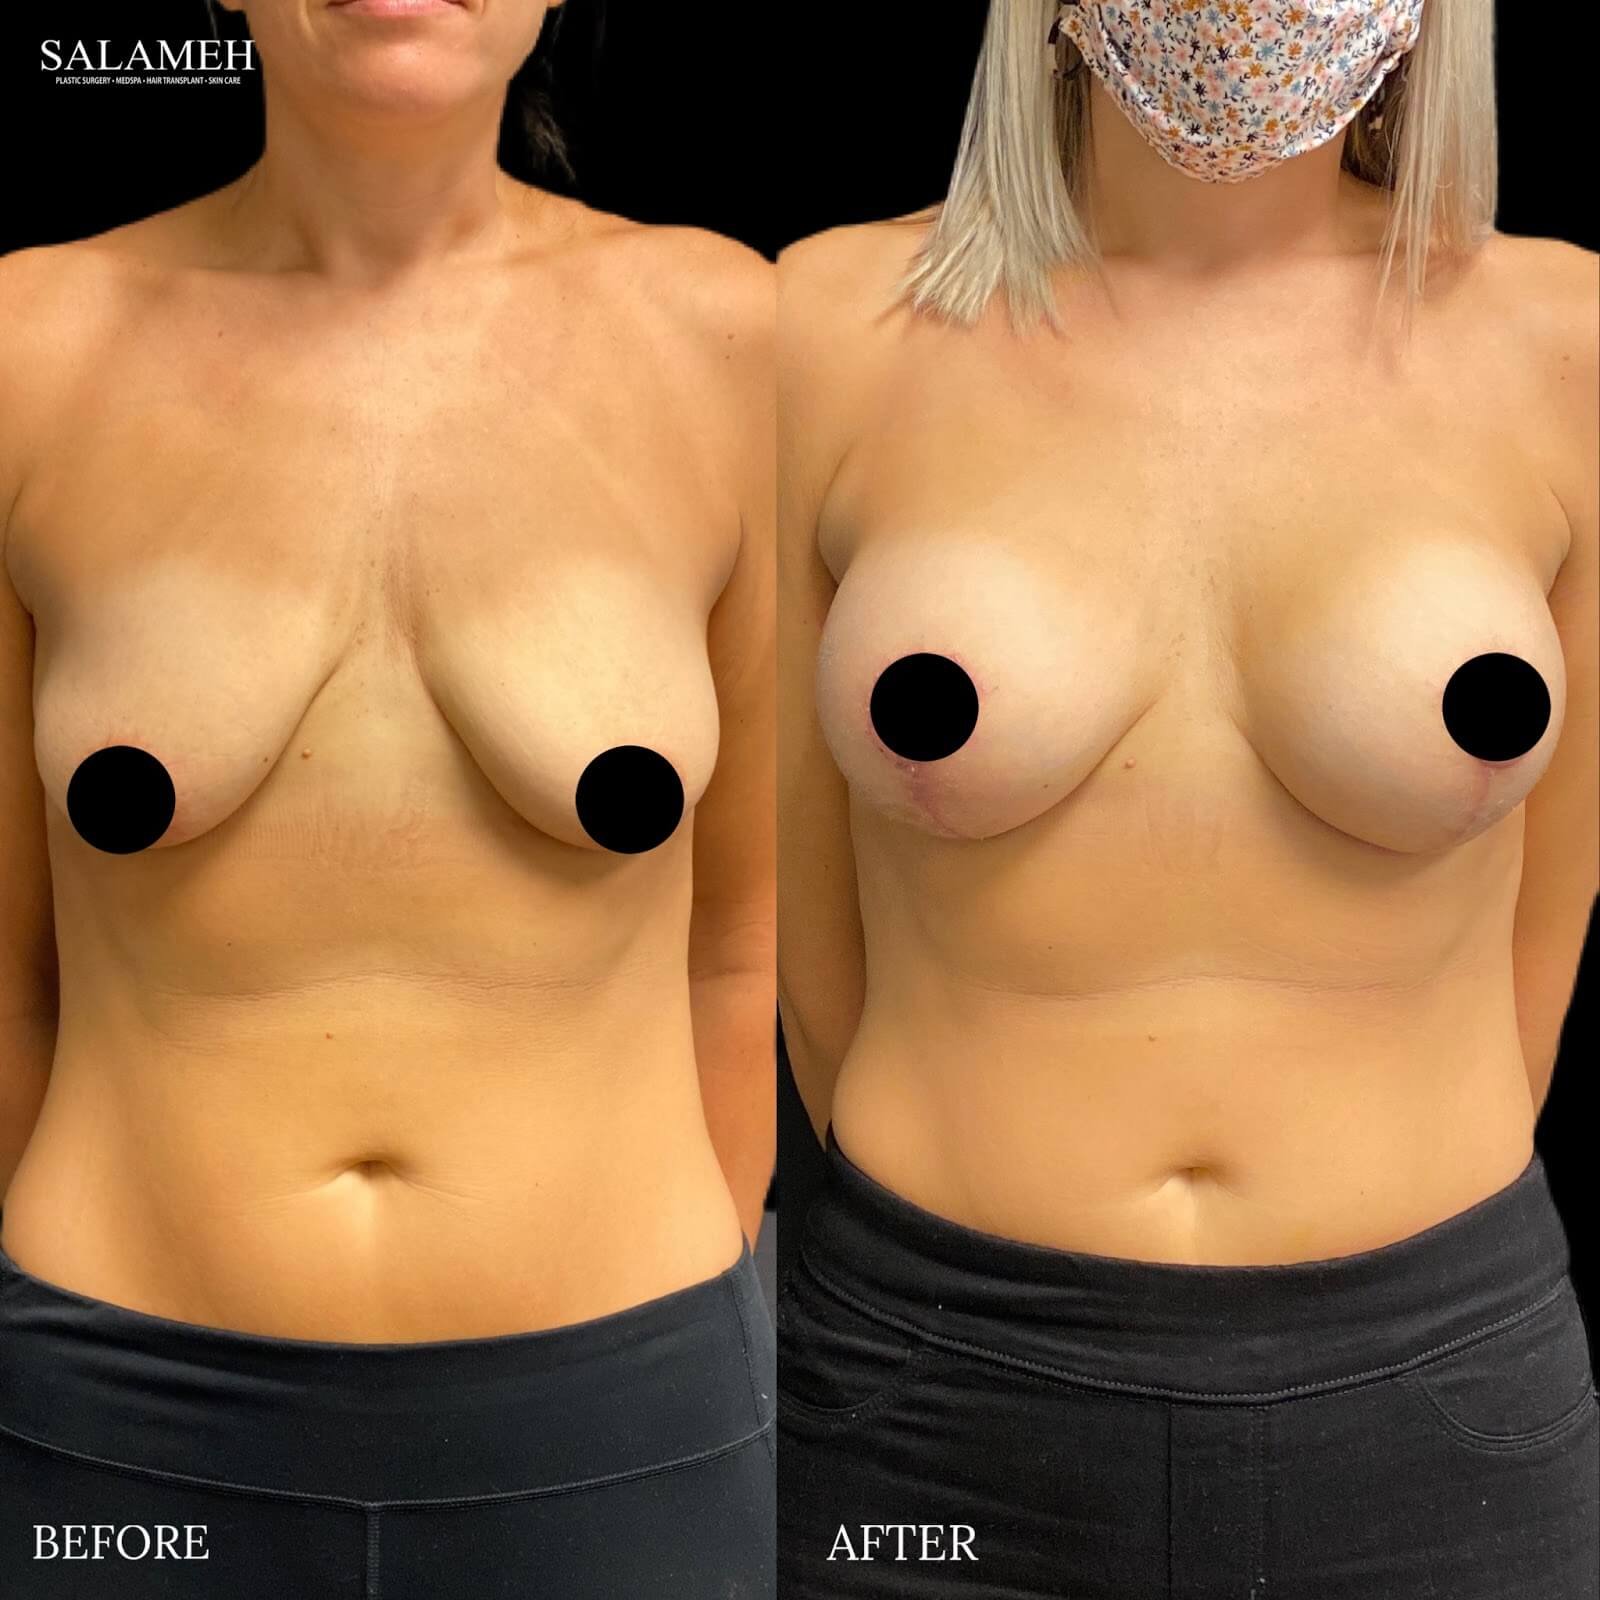 image showing the results of a breast lift, before and after